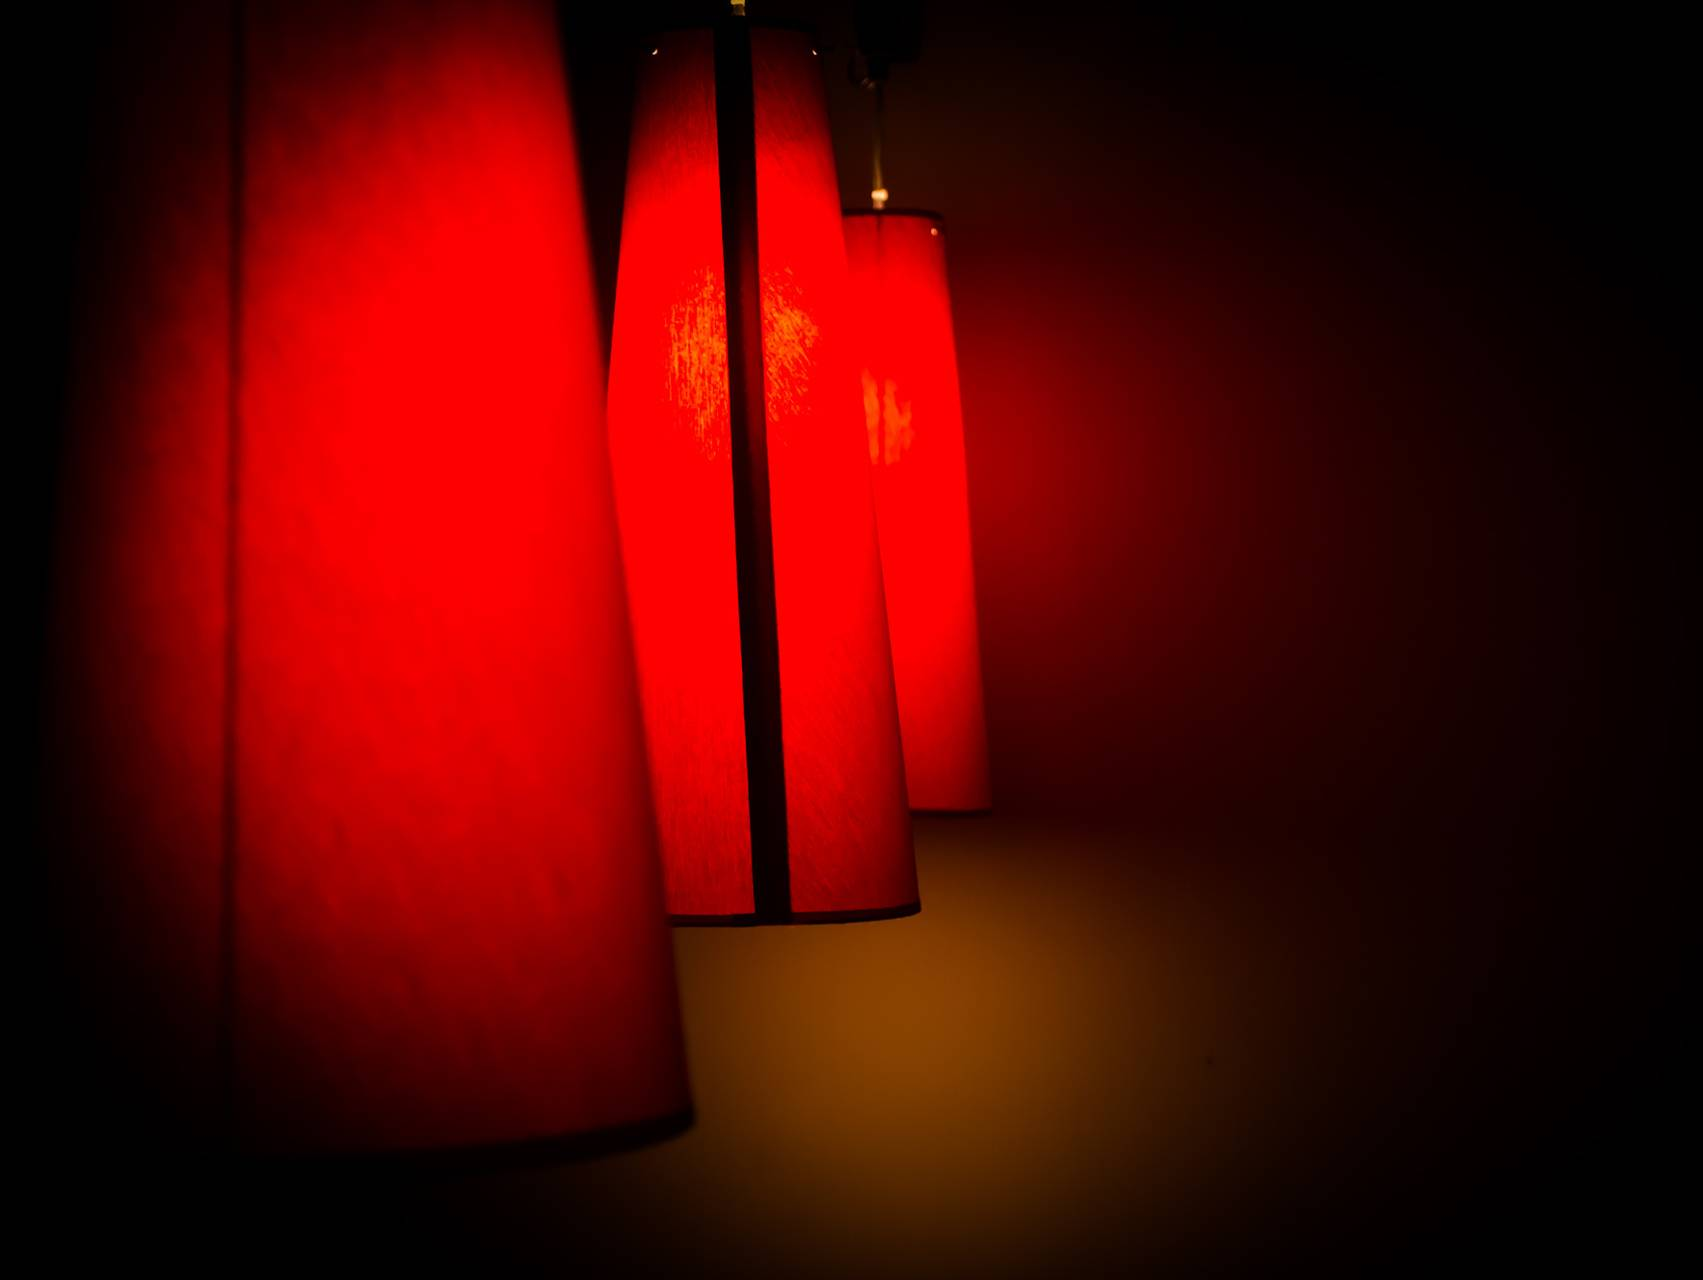 Red Lamps 320x240